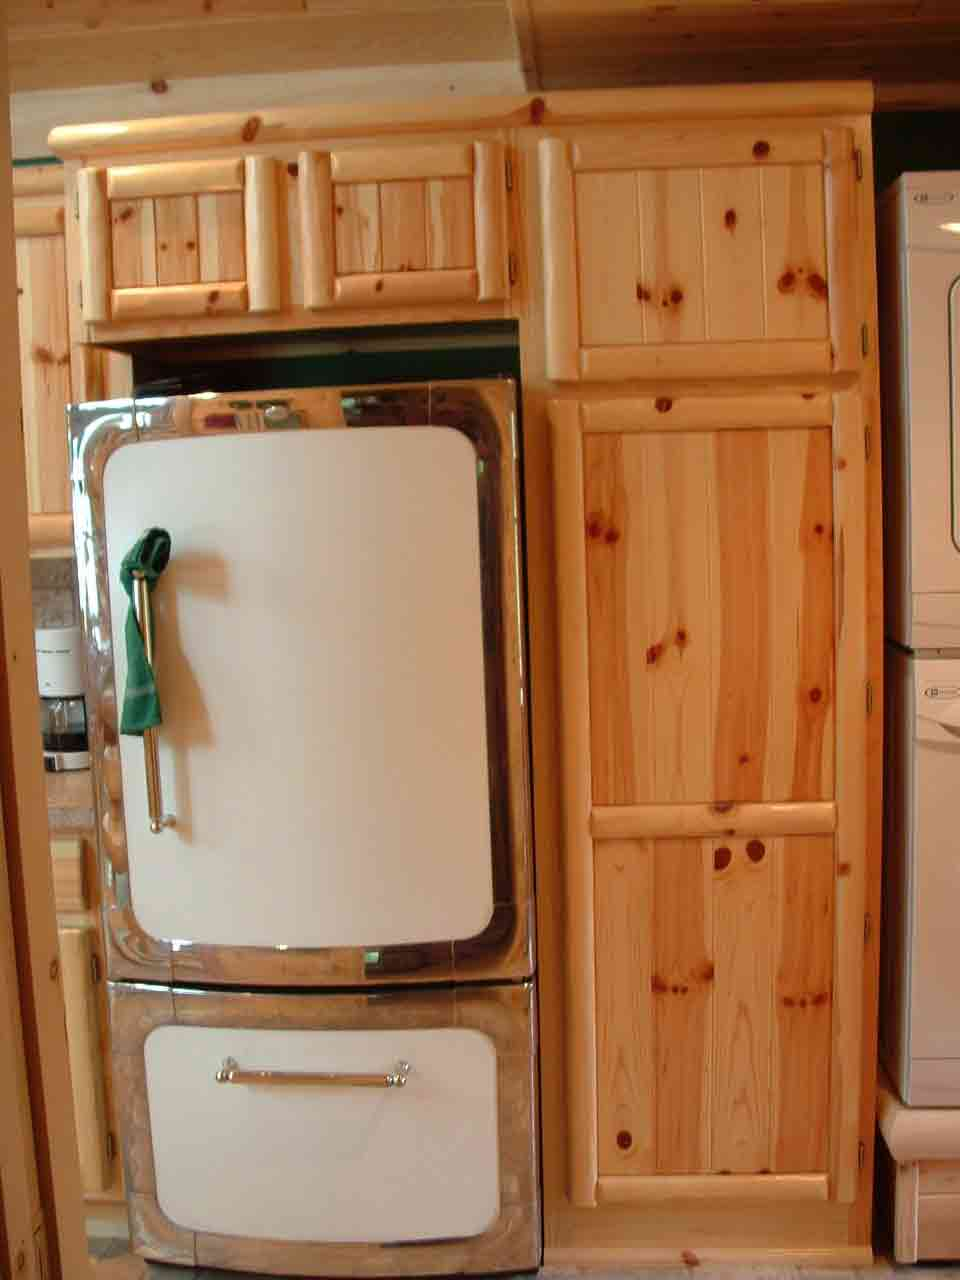 kitchen bath remodeling knotty pine kitchen cabinets doors tile cutting tiles sx painting kitchen cabinets kitchen